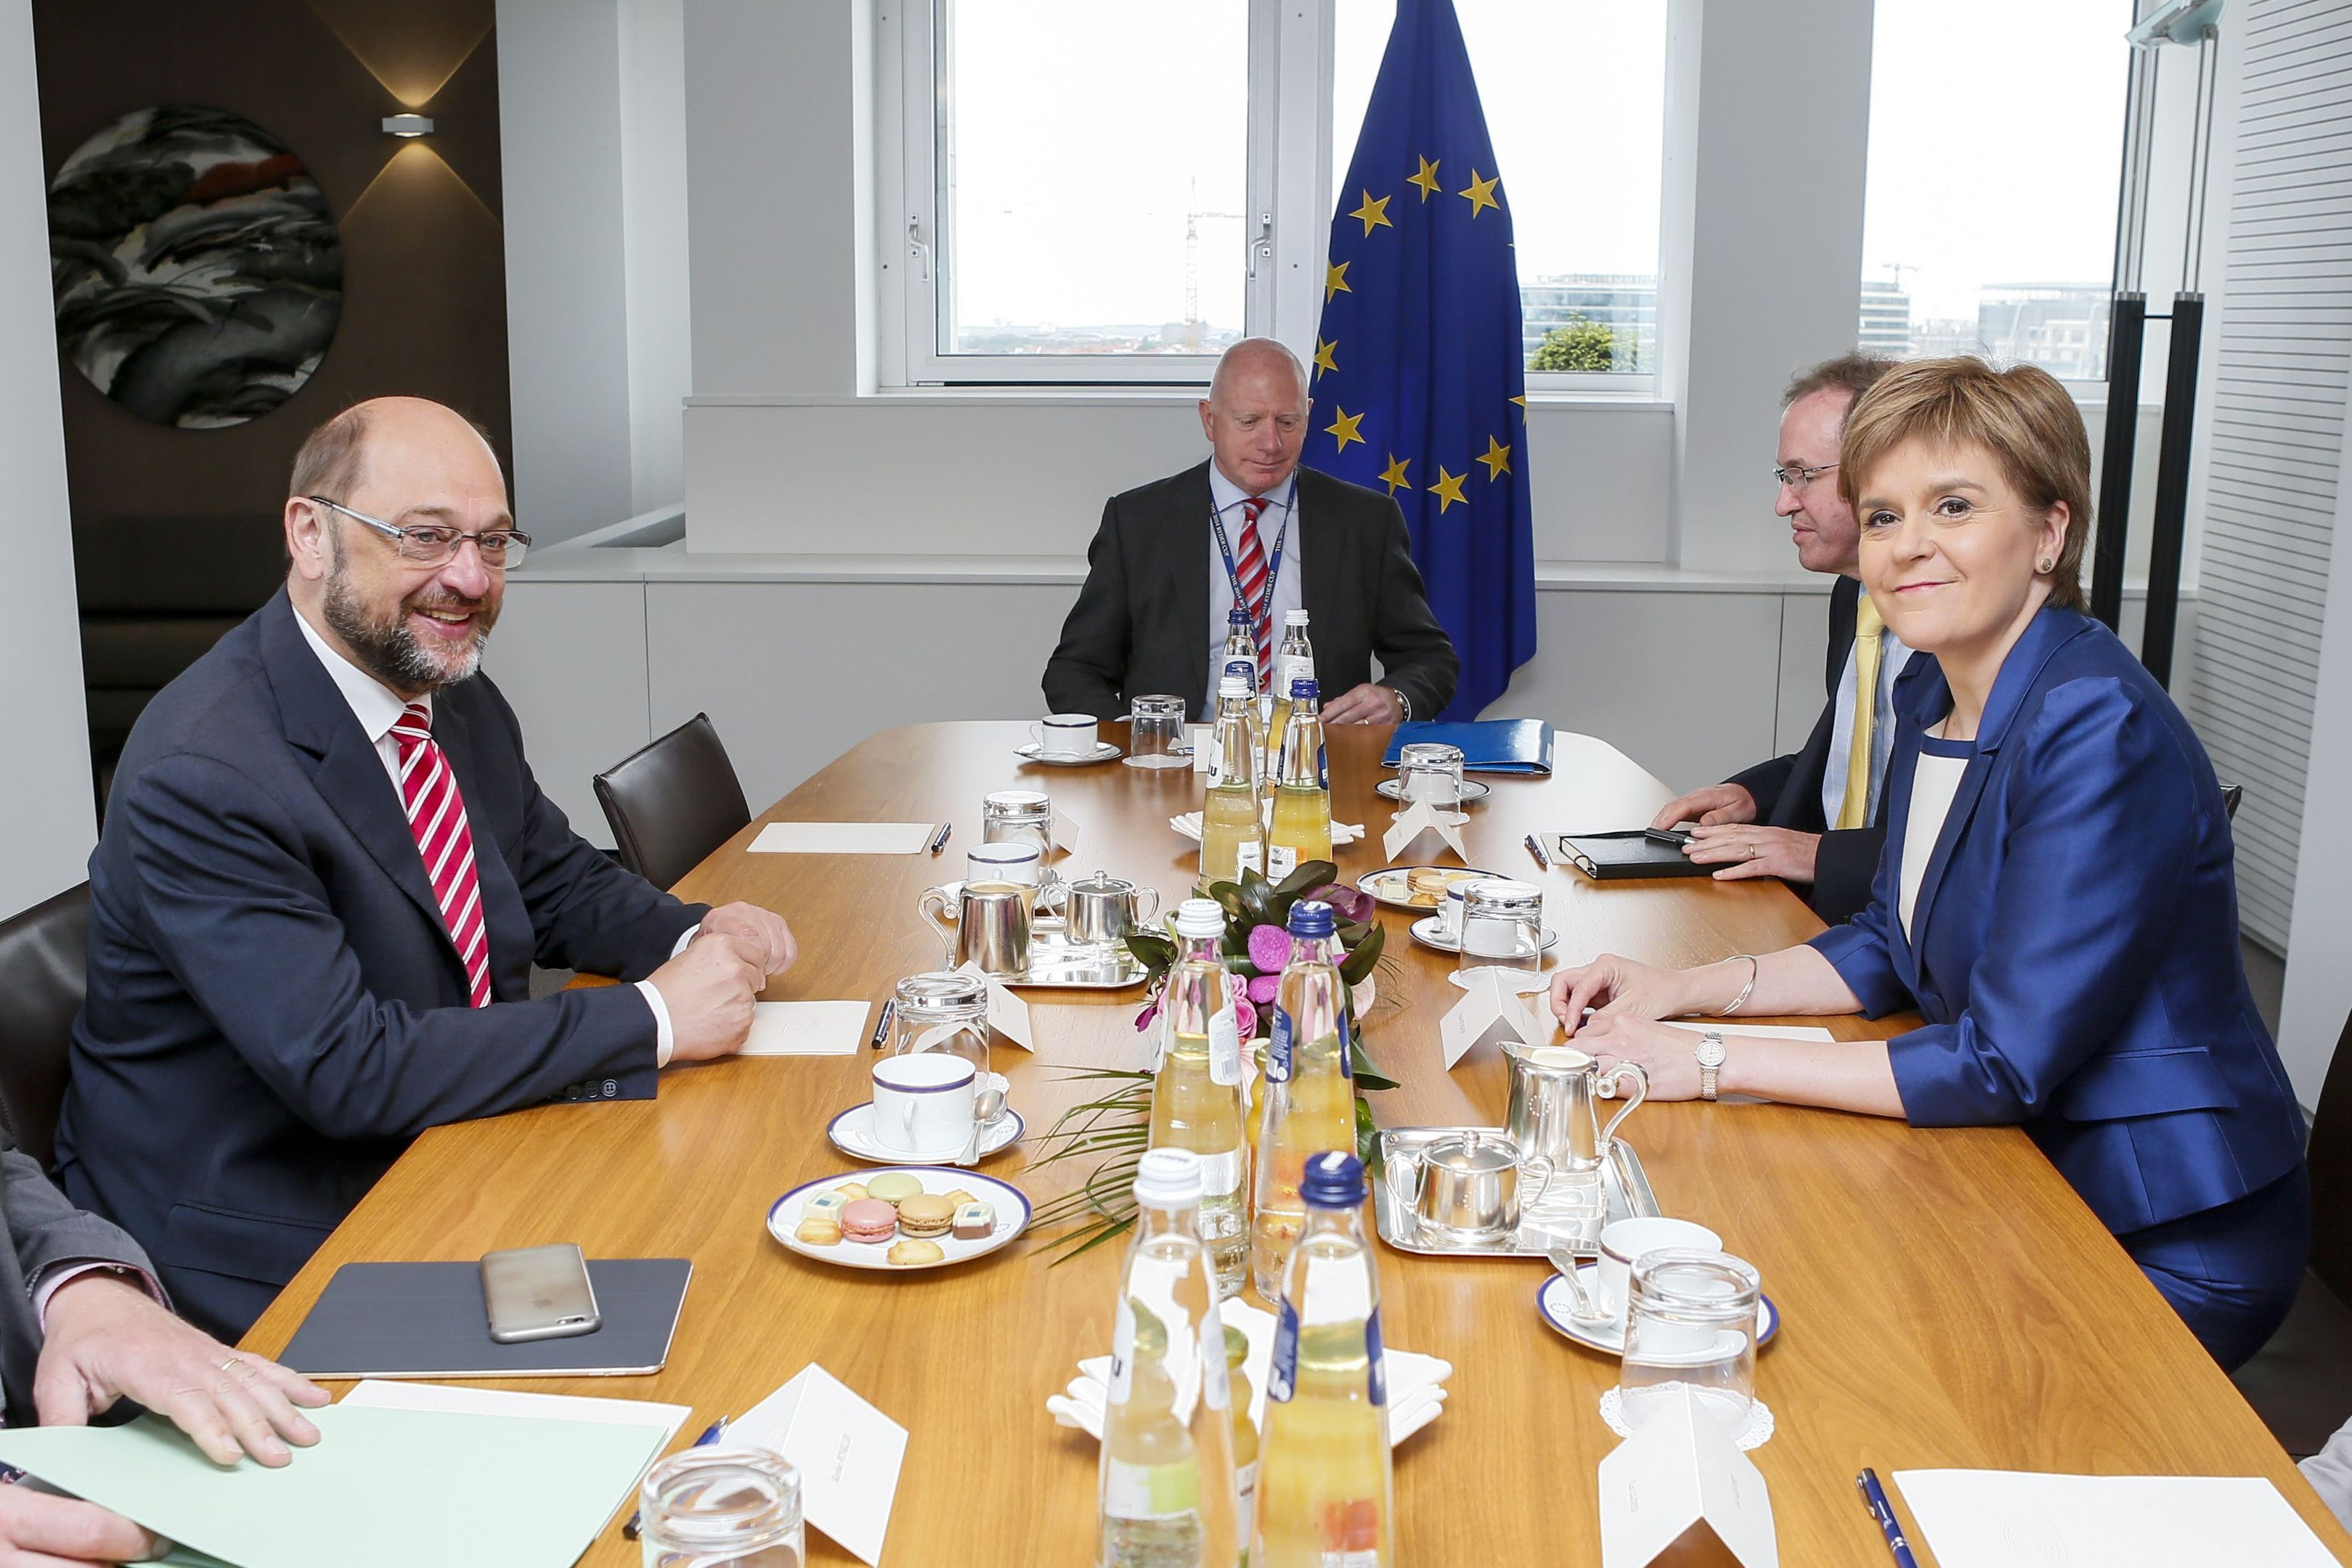 European Parliament President Martin Schulz meeting with First Minister Nicola Sturgeon.